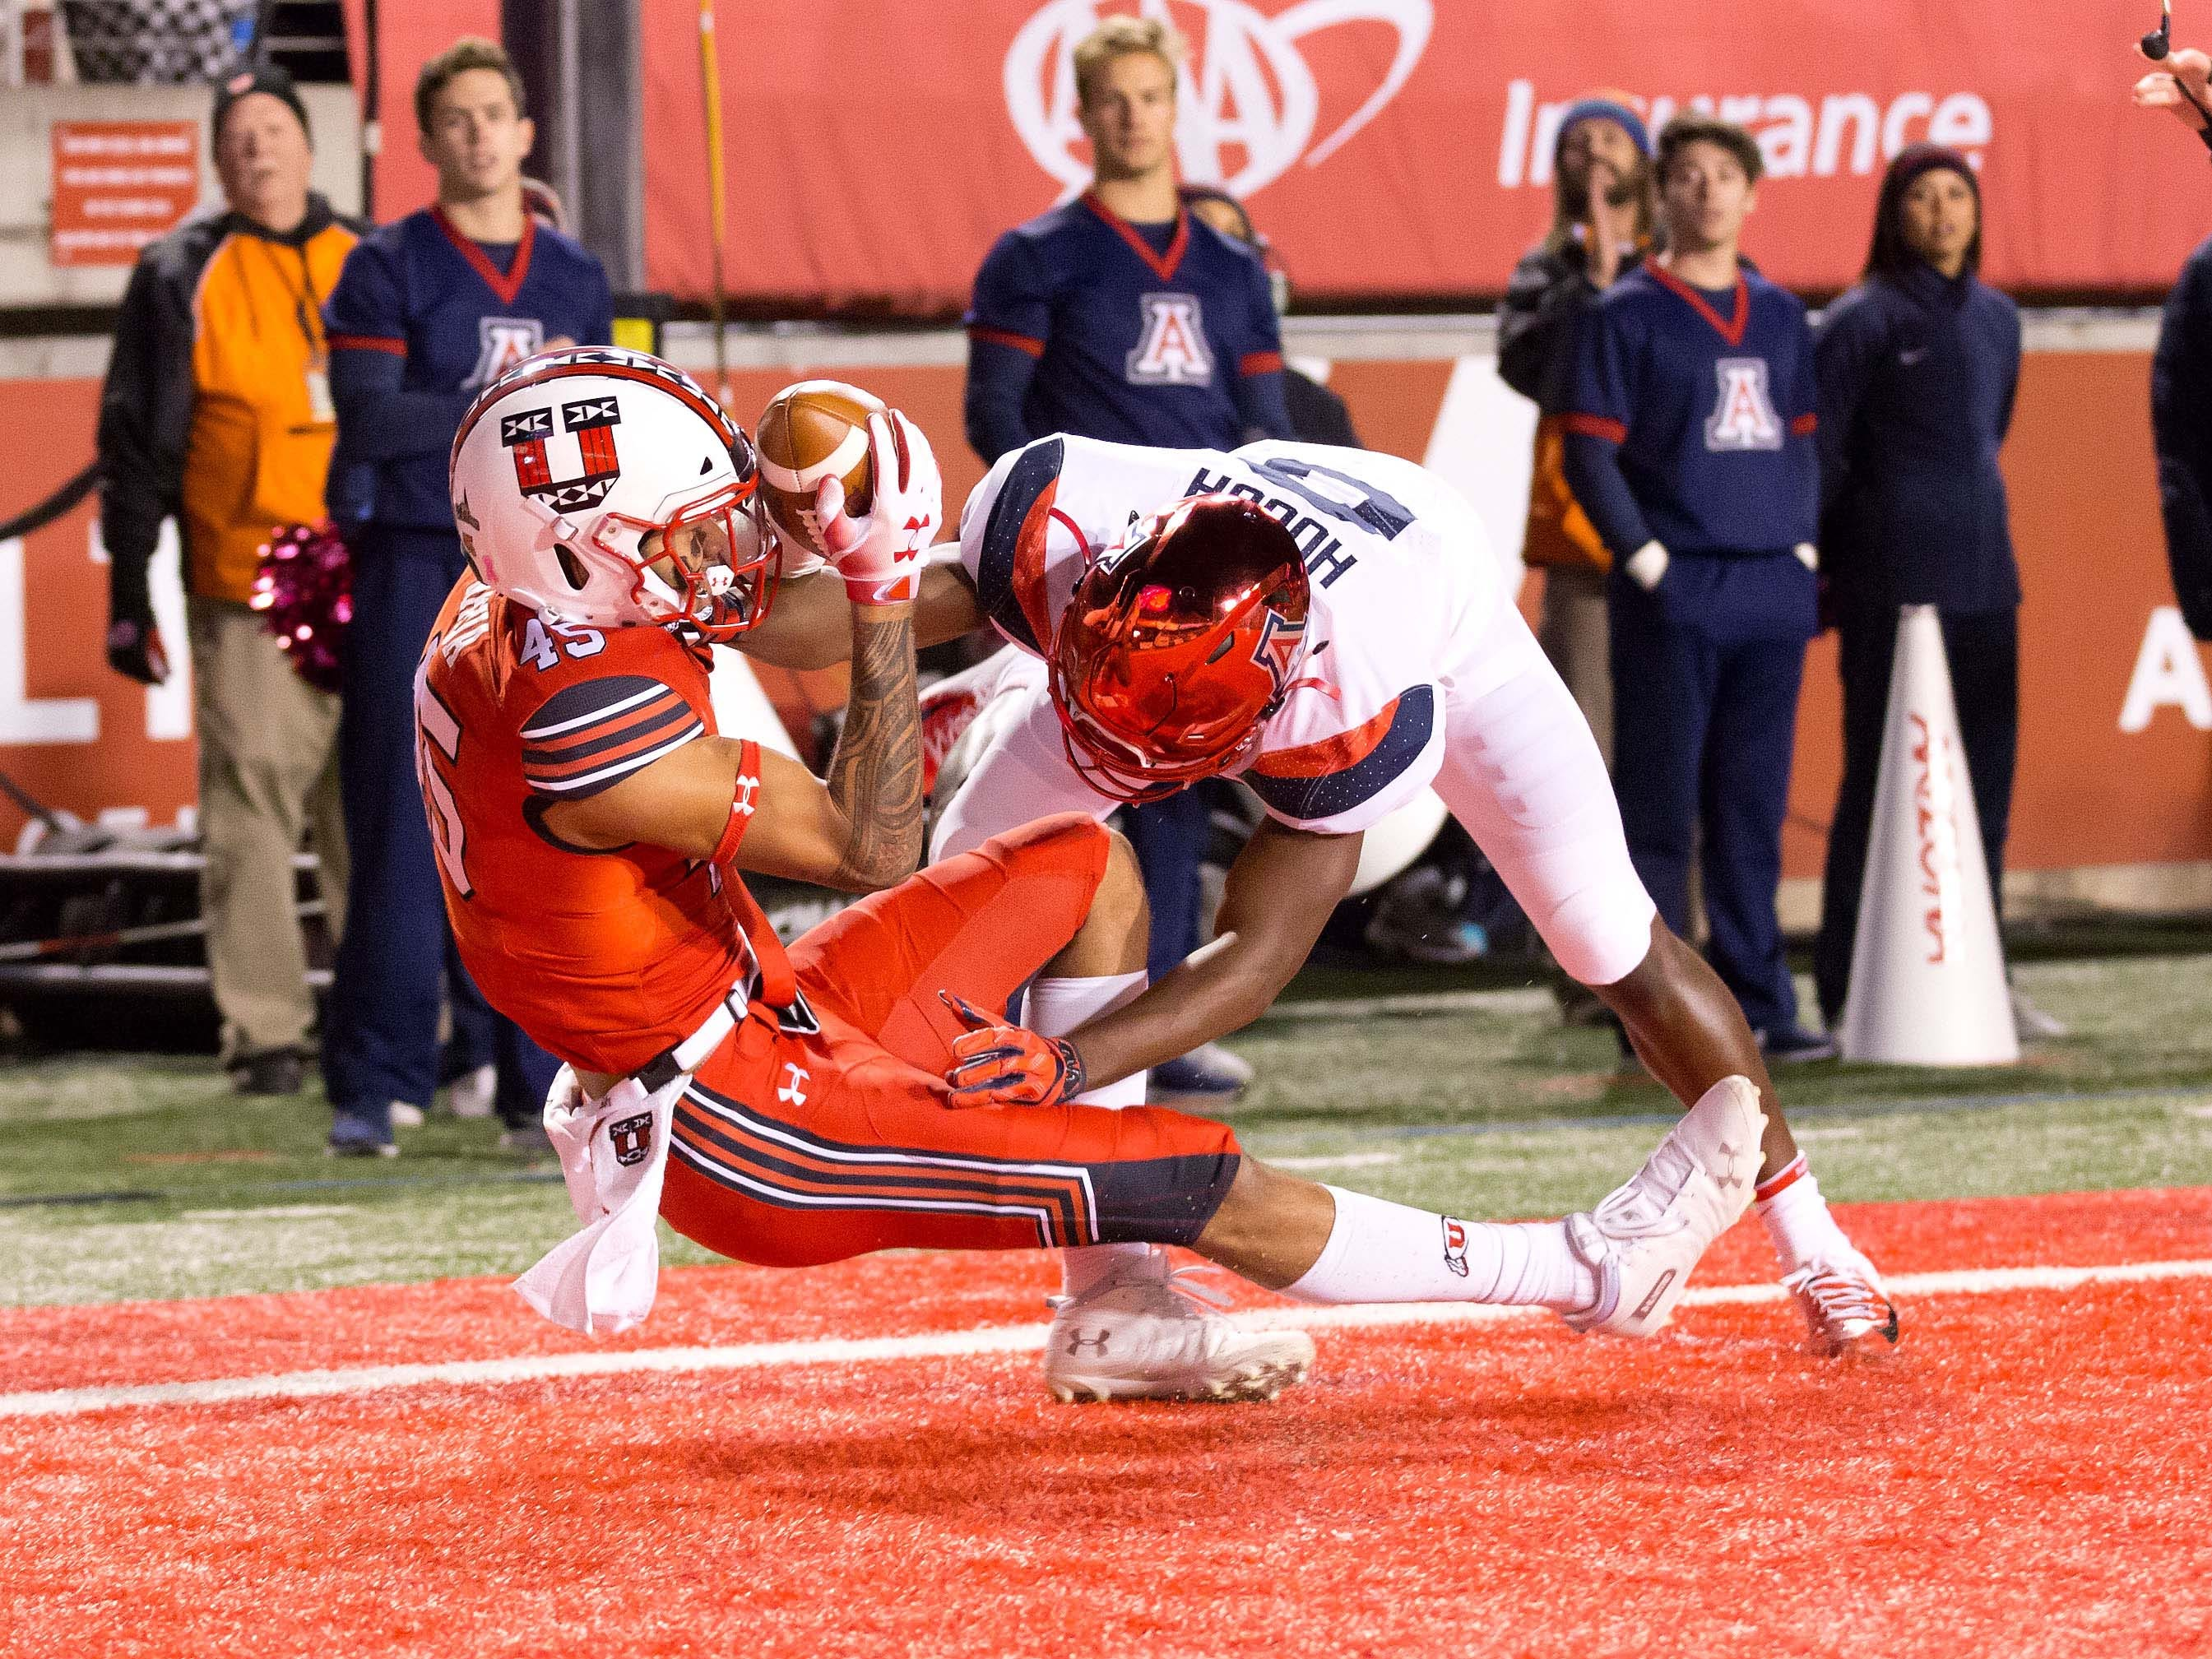 Oct 12, 2018; Salt Lake City, UT, USA; Utah Utes wide receiver Samson Nacua (45) catches a touchdown pass against Arizona Wildcats cornerback Tim Hough (8) during the first quarter at Rice-Eccles Stadium.